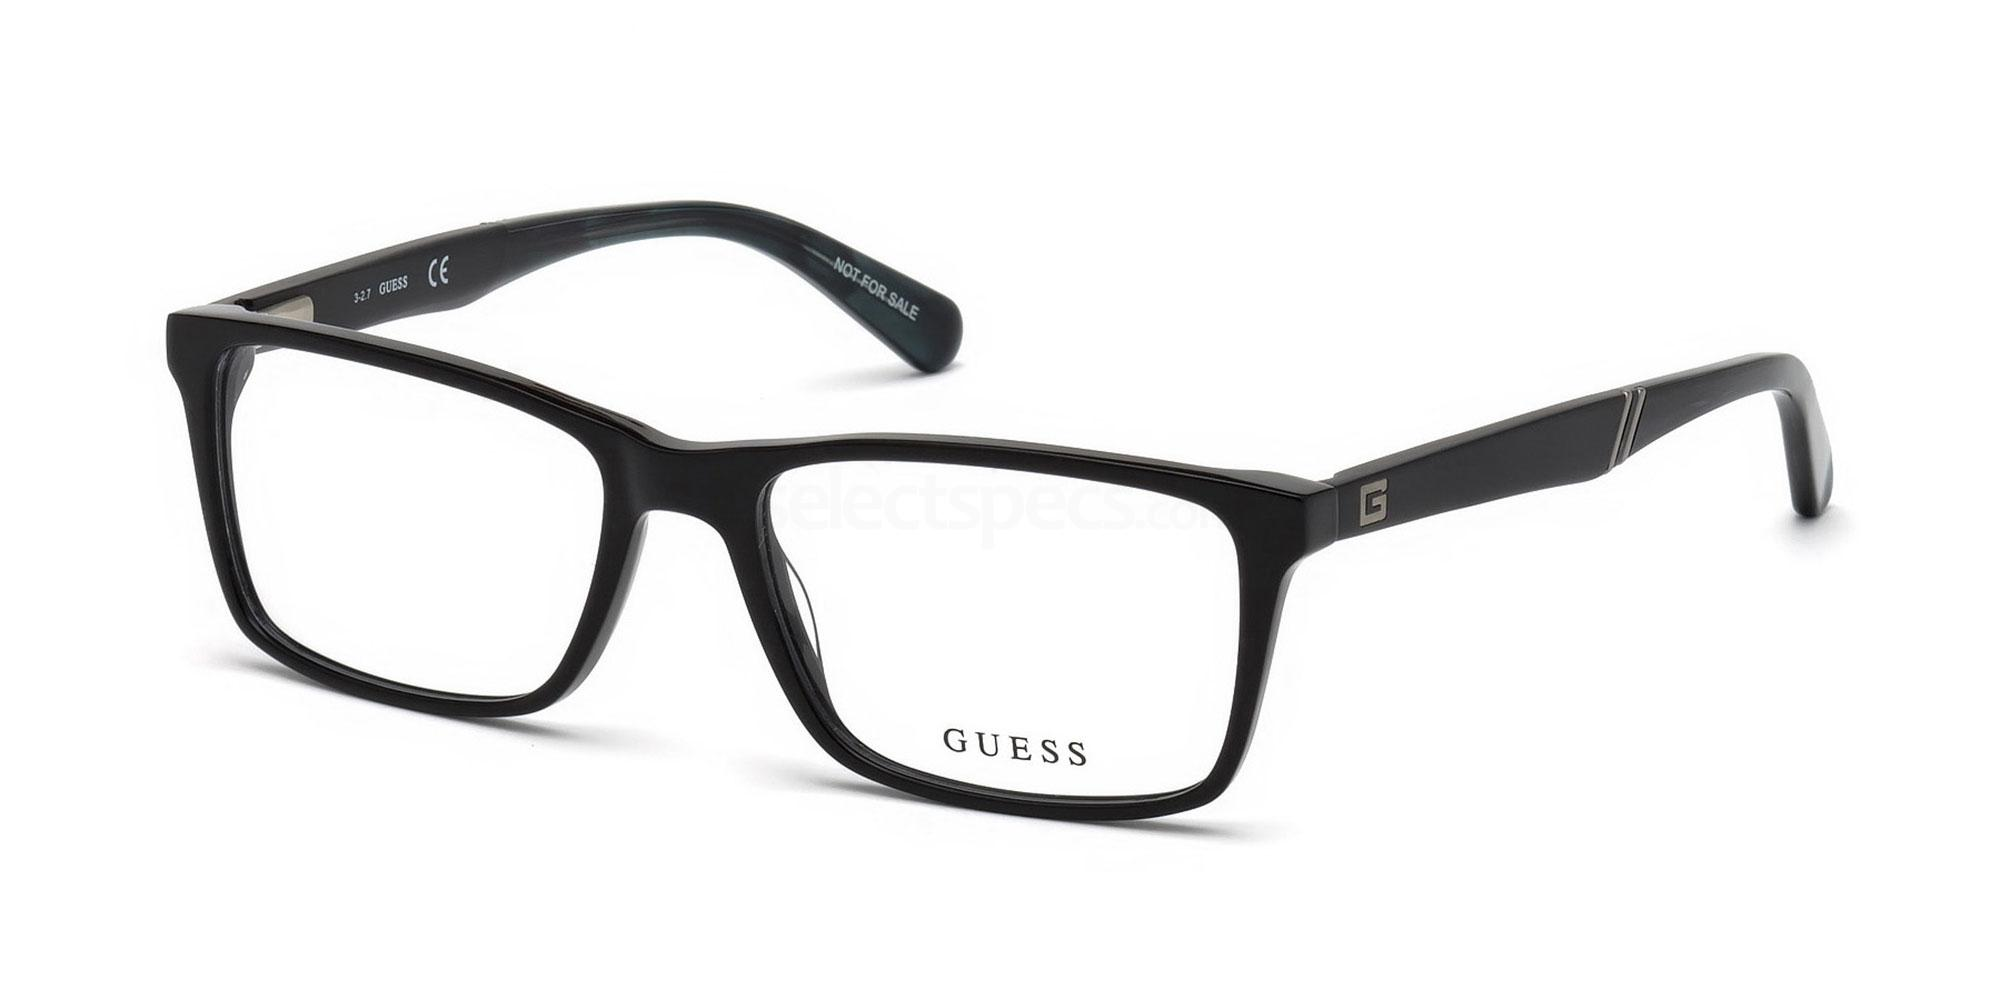 001 GU1954 Glasses, Guess